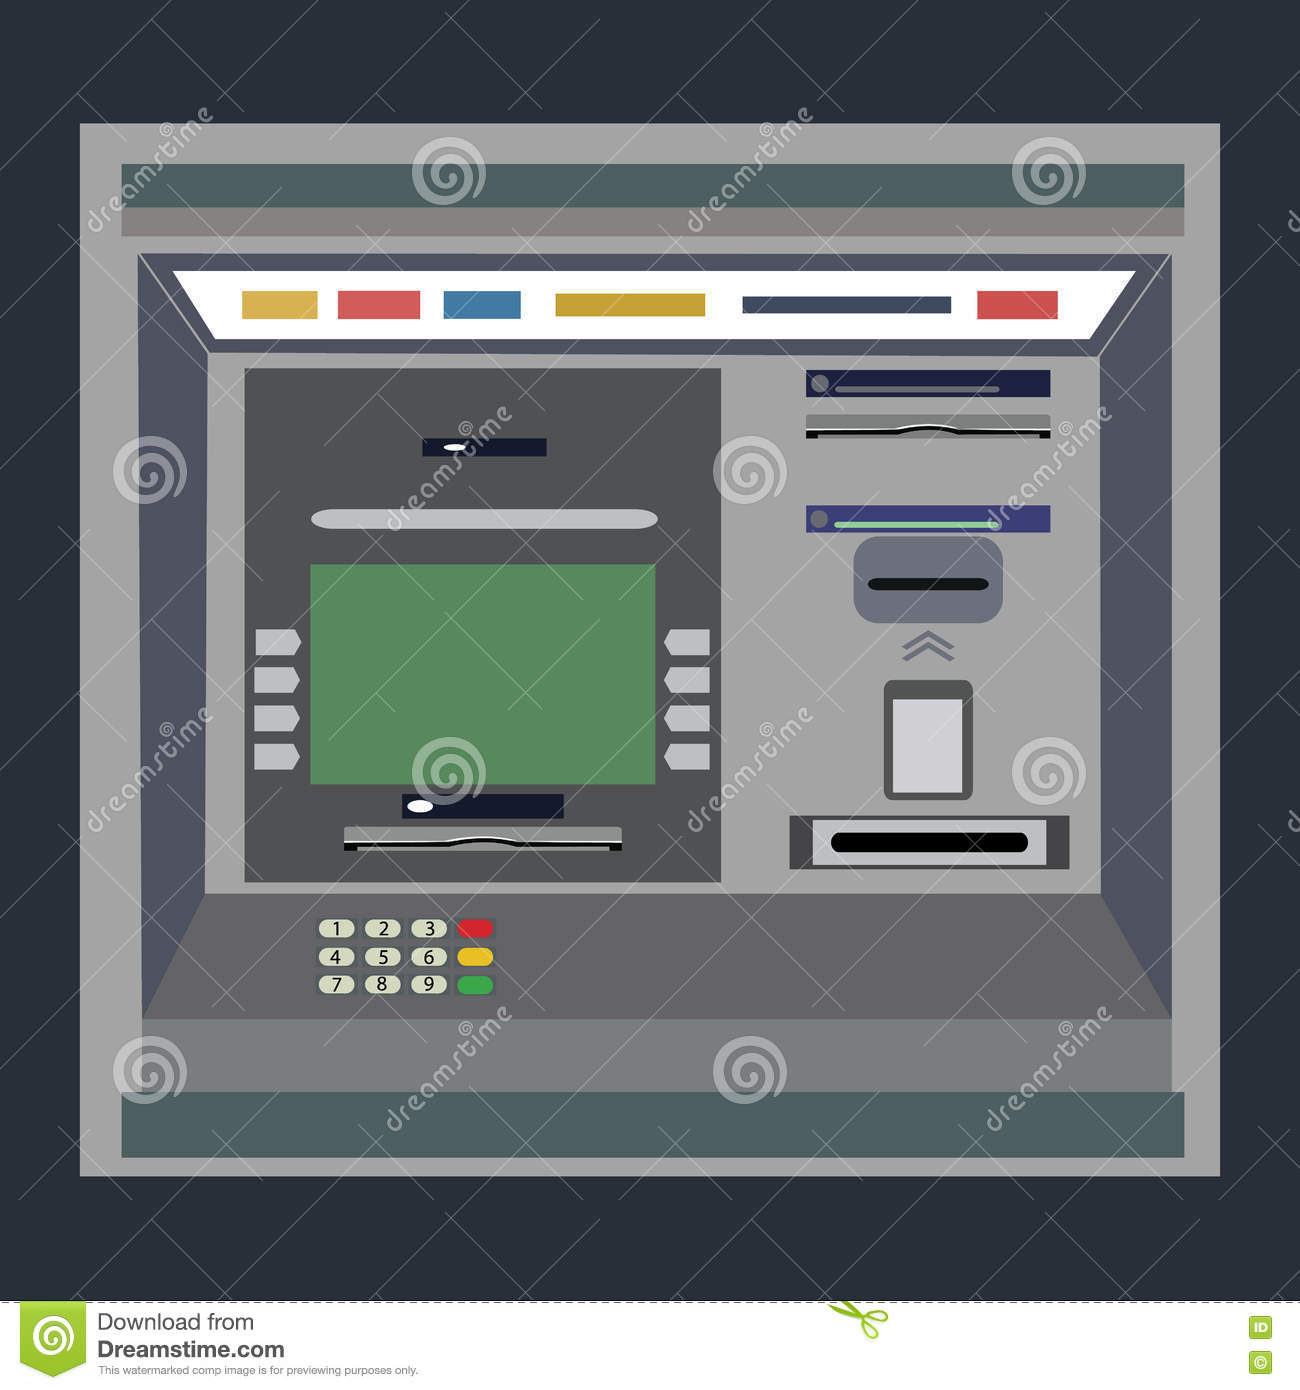 ATM payment vector illustration.Withdrawing money from card concept. Payment using credit card. ATM terminal usage.